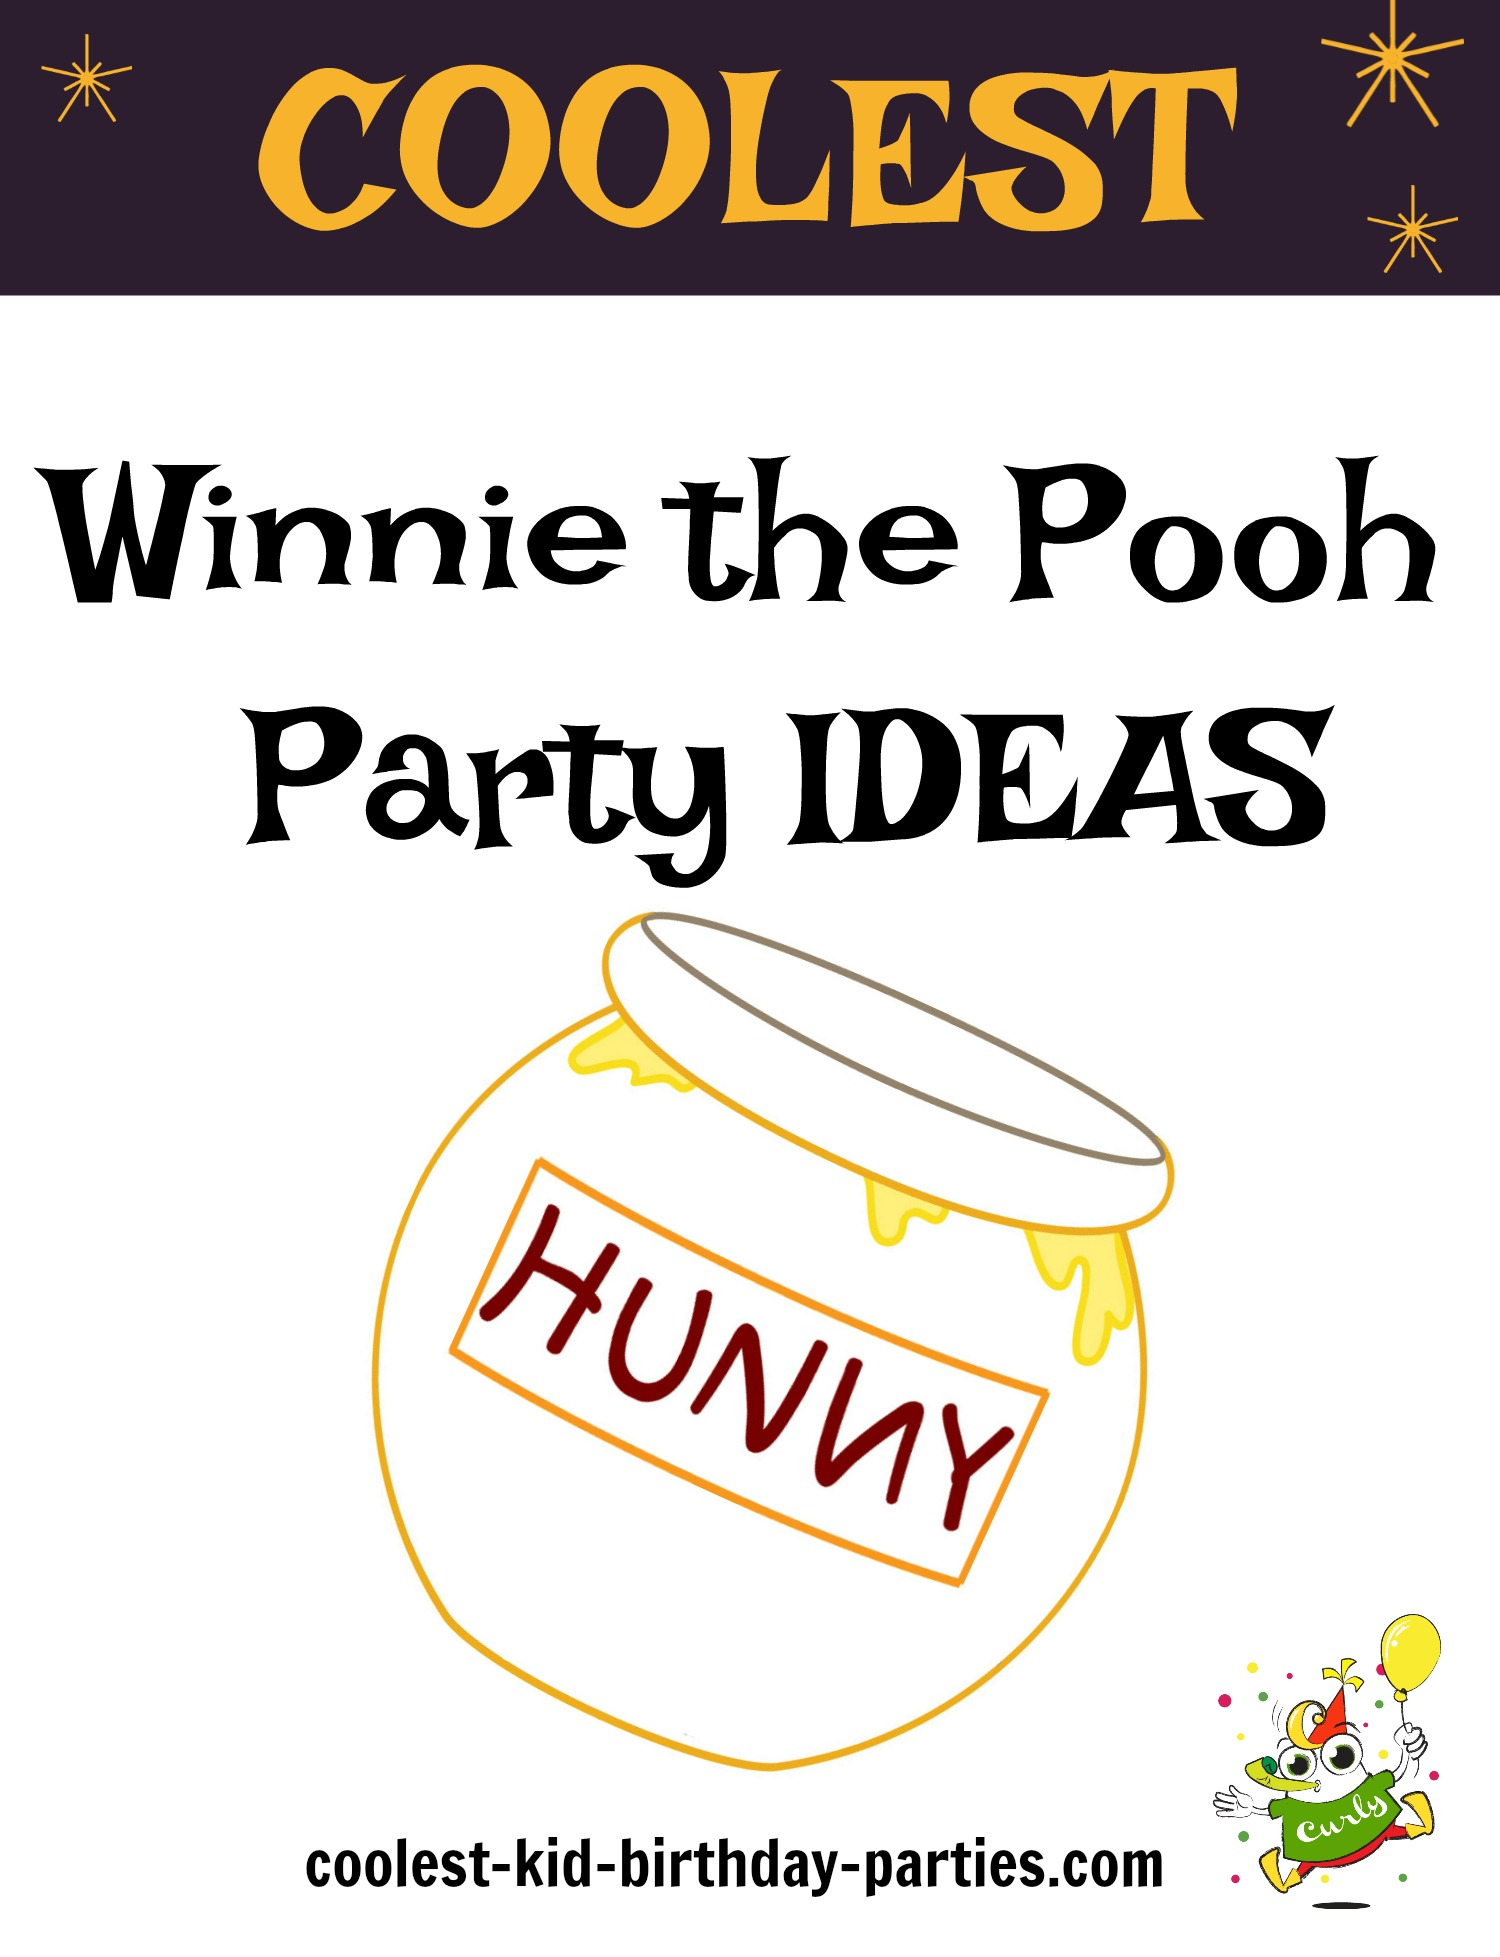 photo relating to Free Printable Left Right Birthday Game titled Coolest Winnie the Pooh Birthday Designs Coolest Youngster